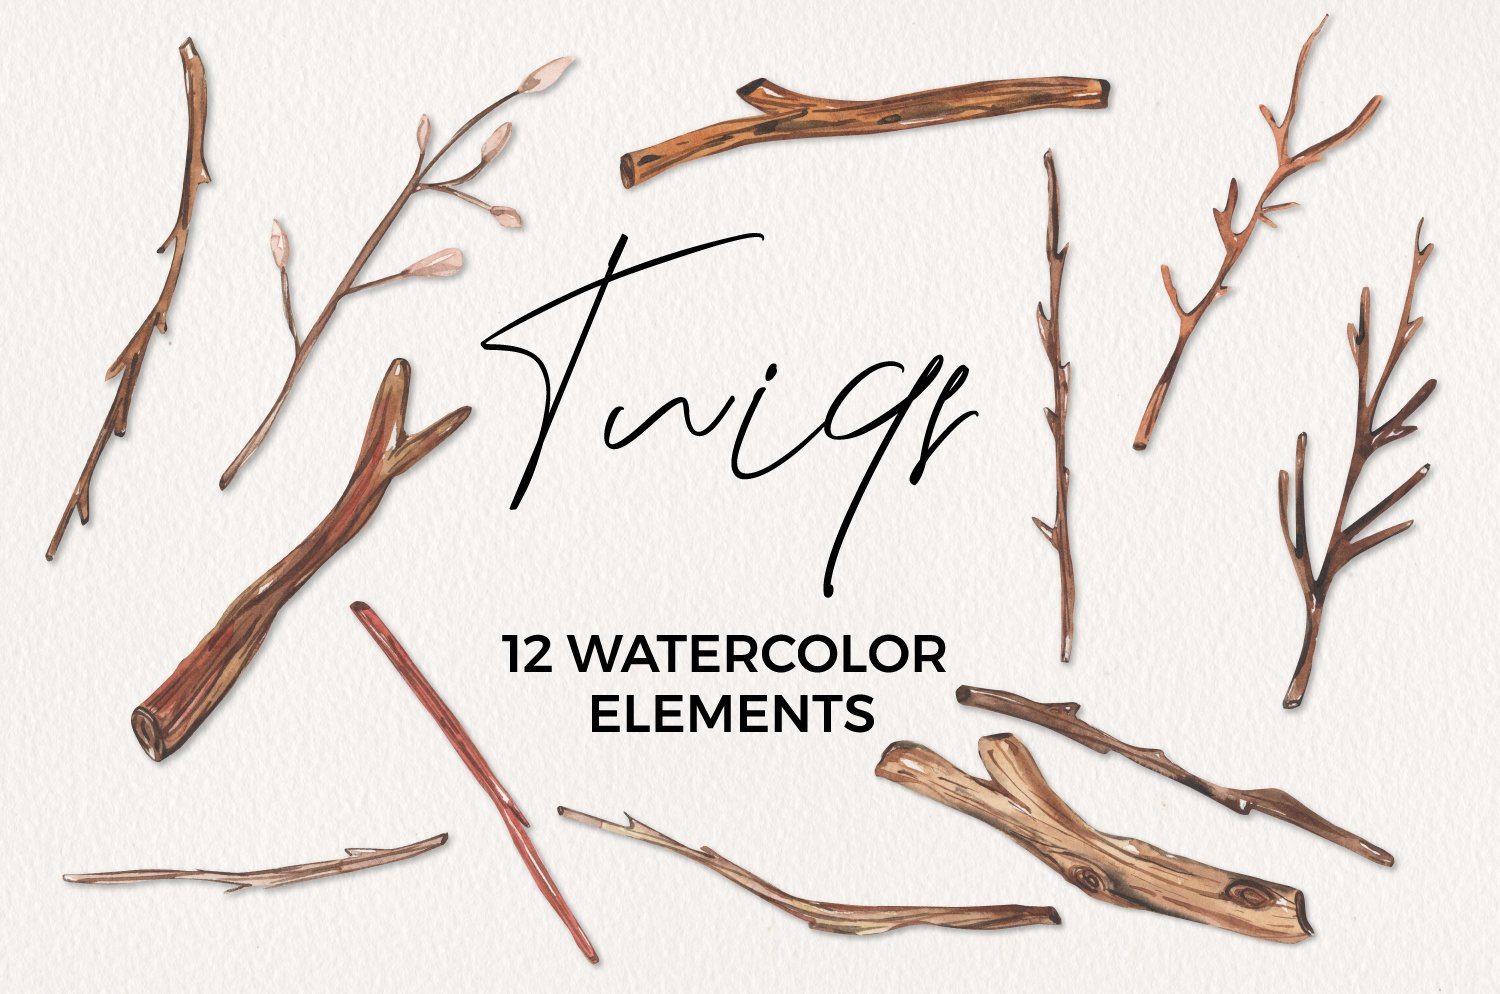 Twigs Detailed Watercolor 12 Elements Branches Wood example image 1